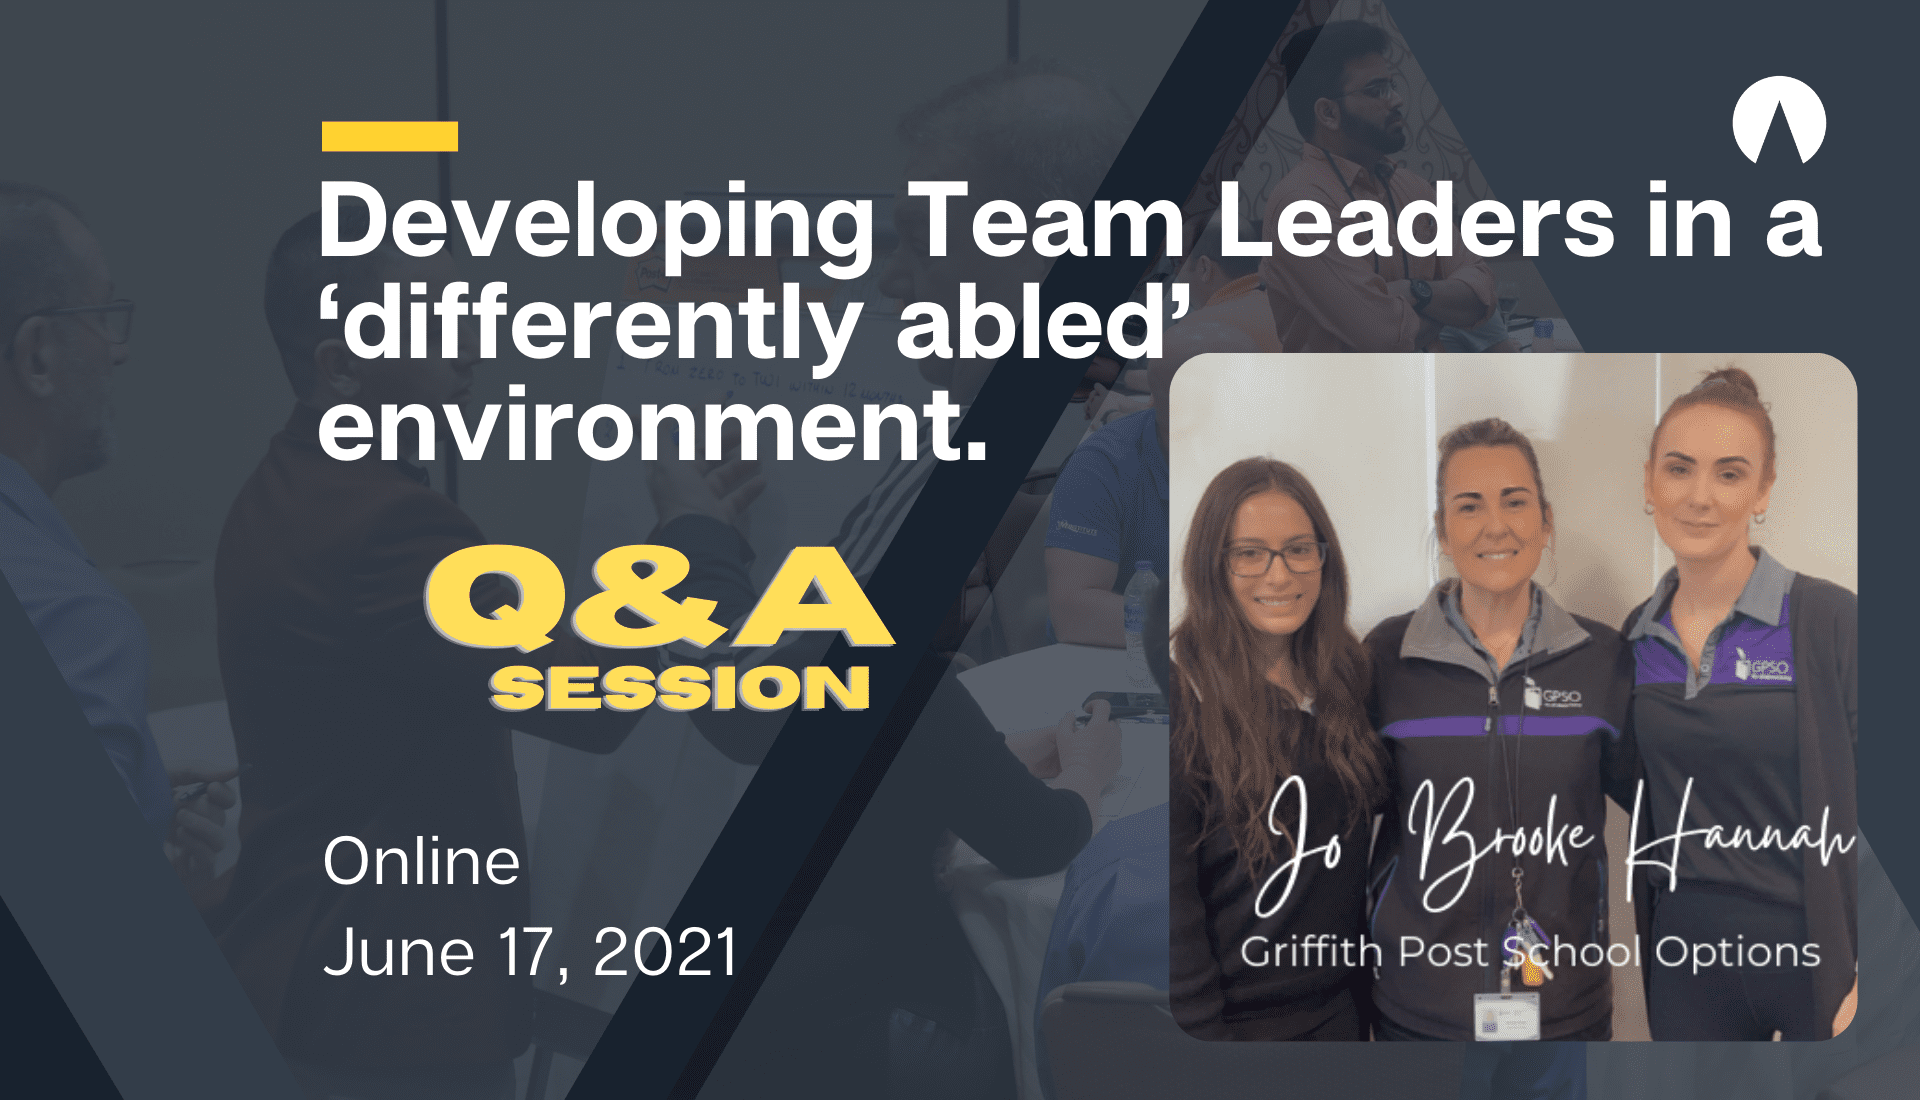 Developing Team Leaders in a 'differently abled' environment